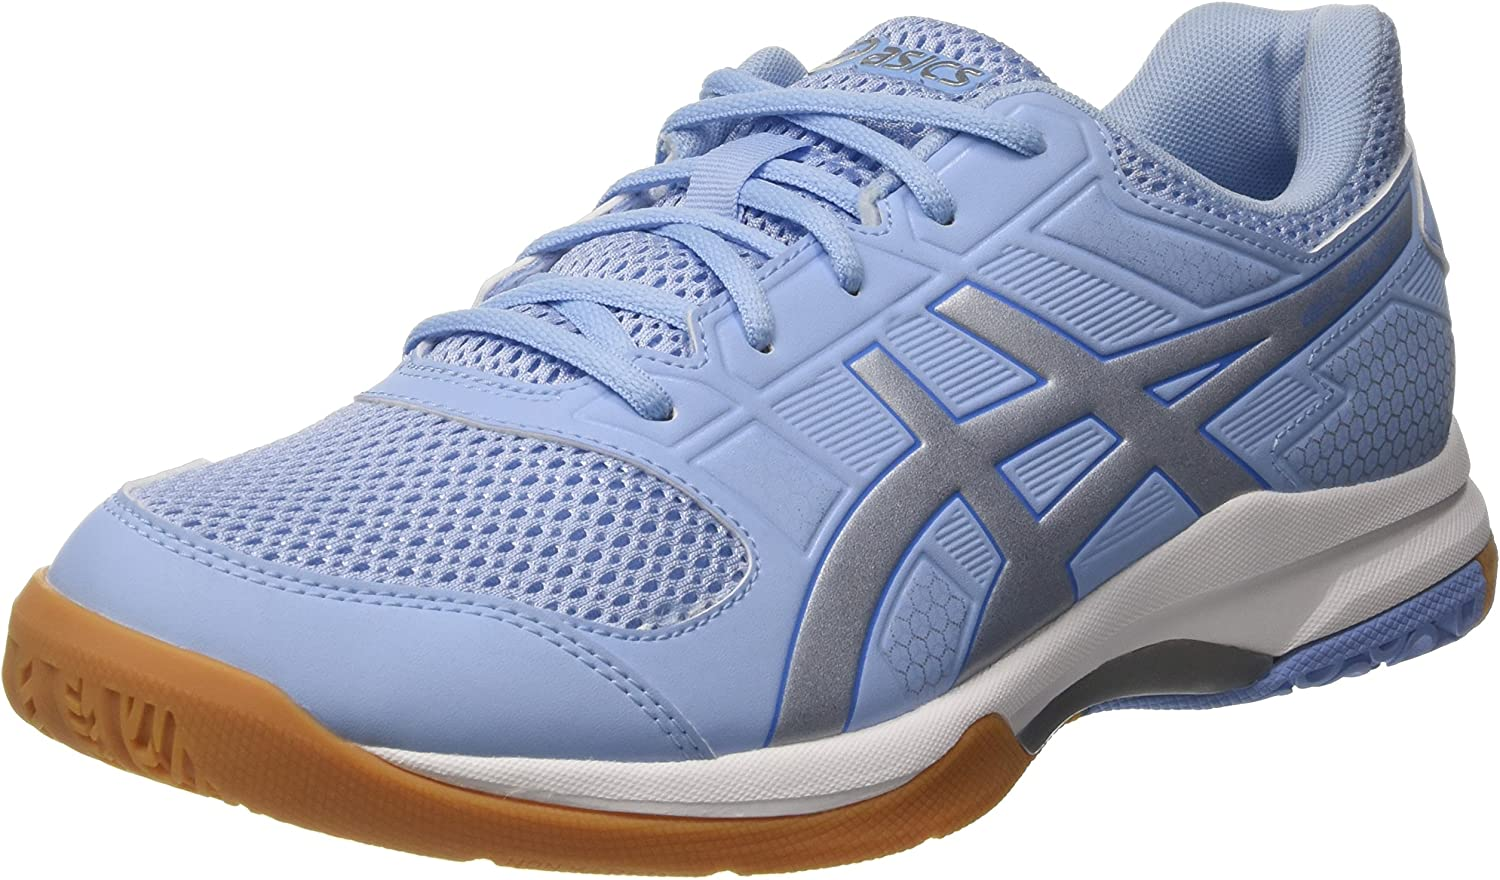 Asics - Gelrocket 8 3993 Womens - color  White-Silver-Light bluee - Size  10.5US